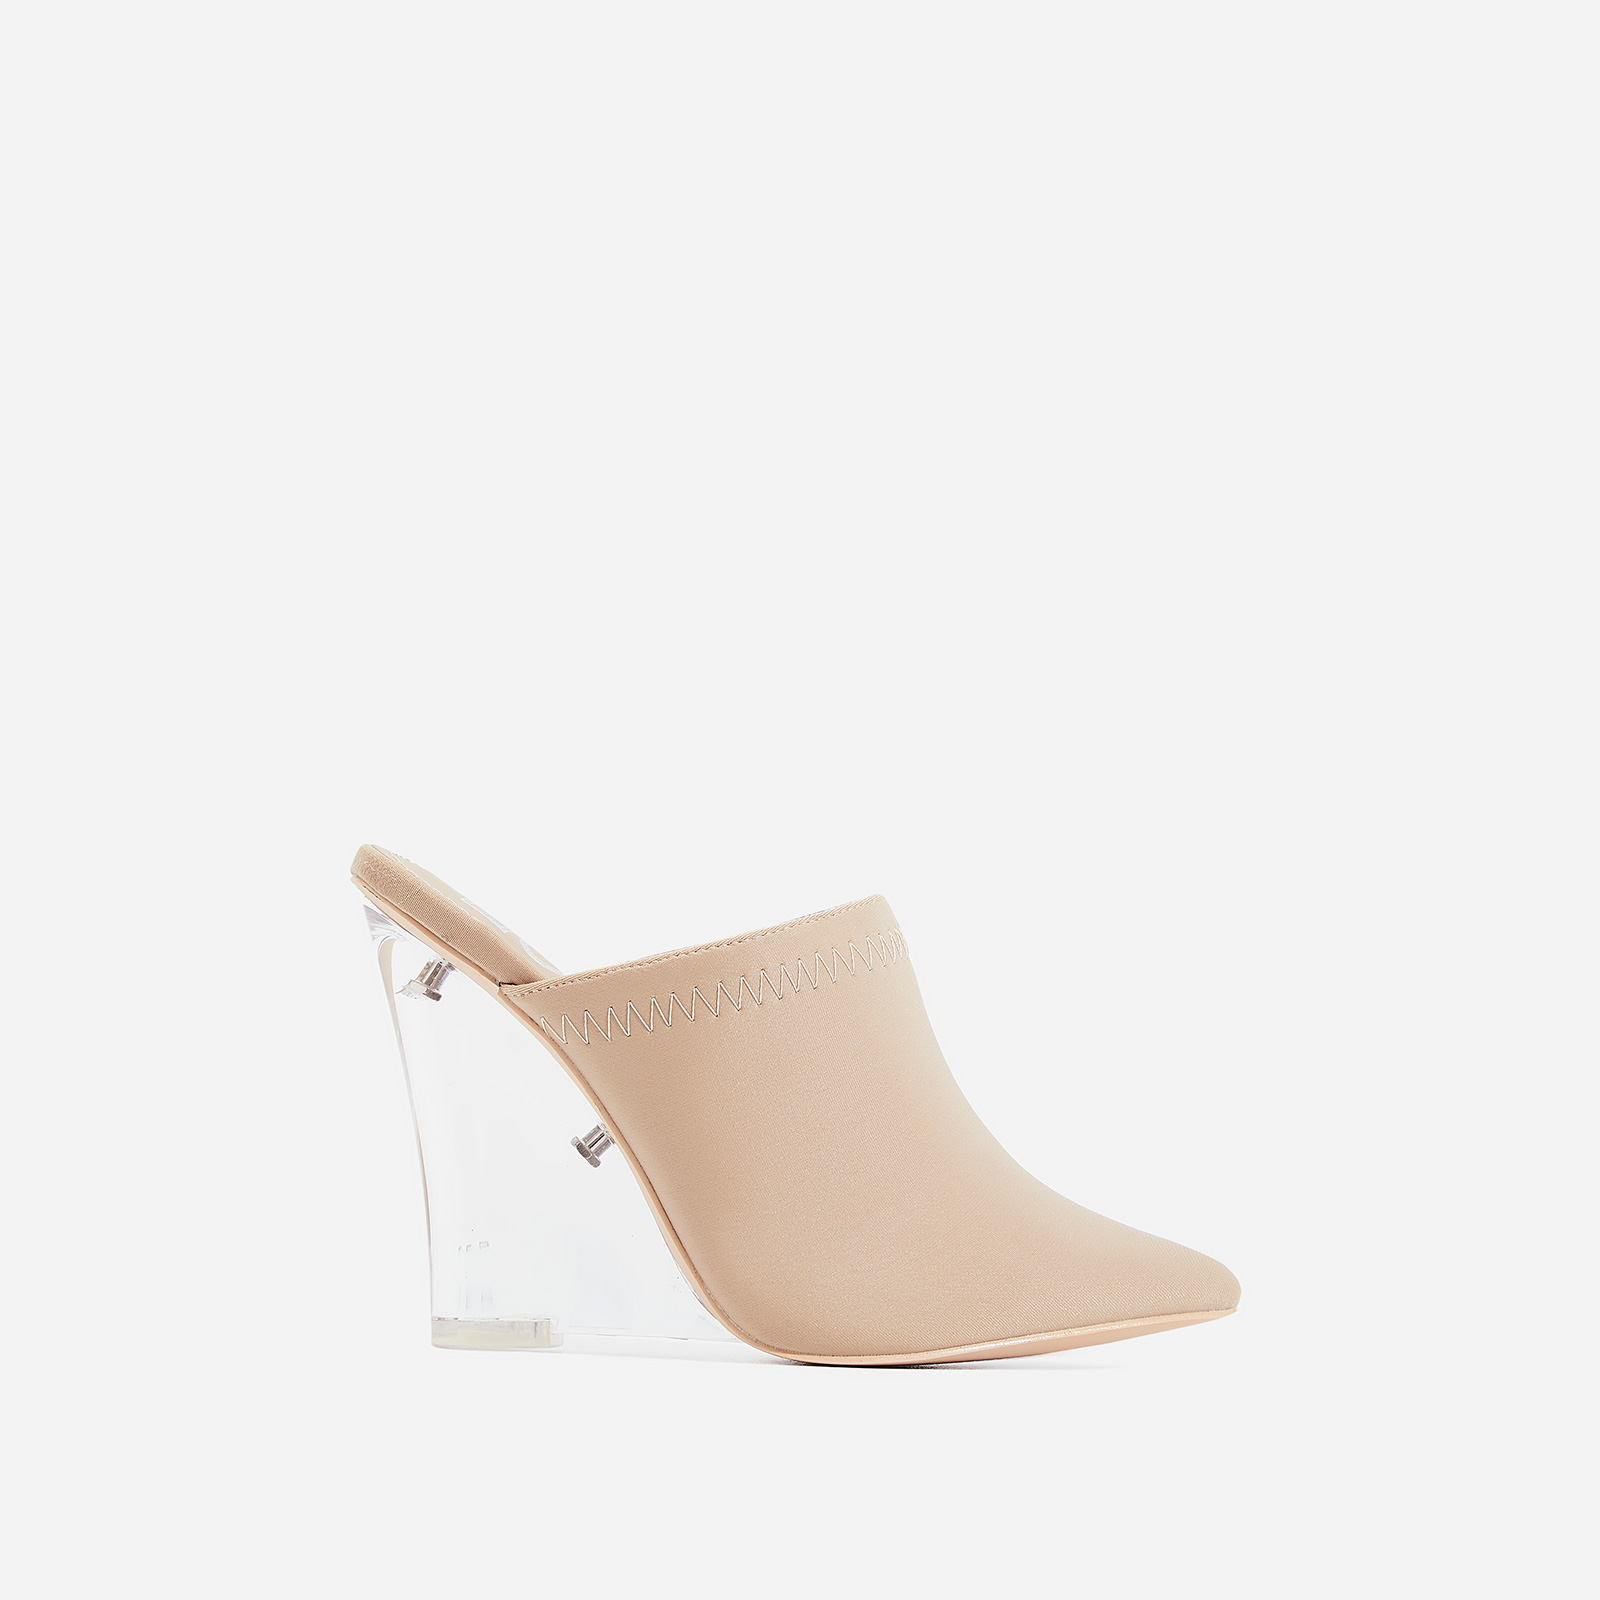 Dear Perspex Wedge Heel Mule In Nude Lycra